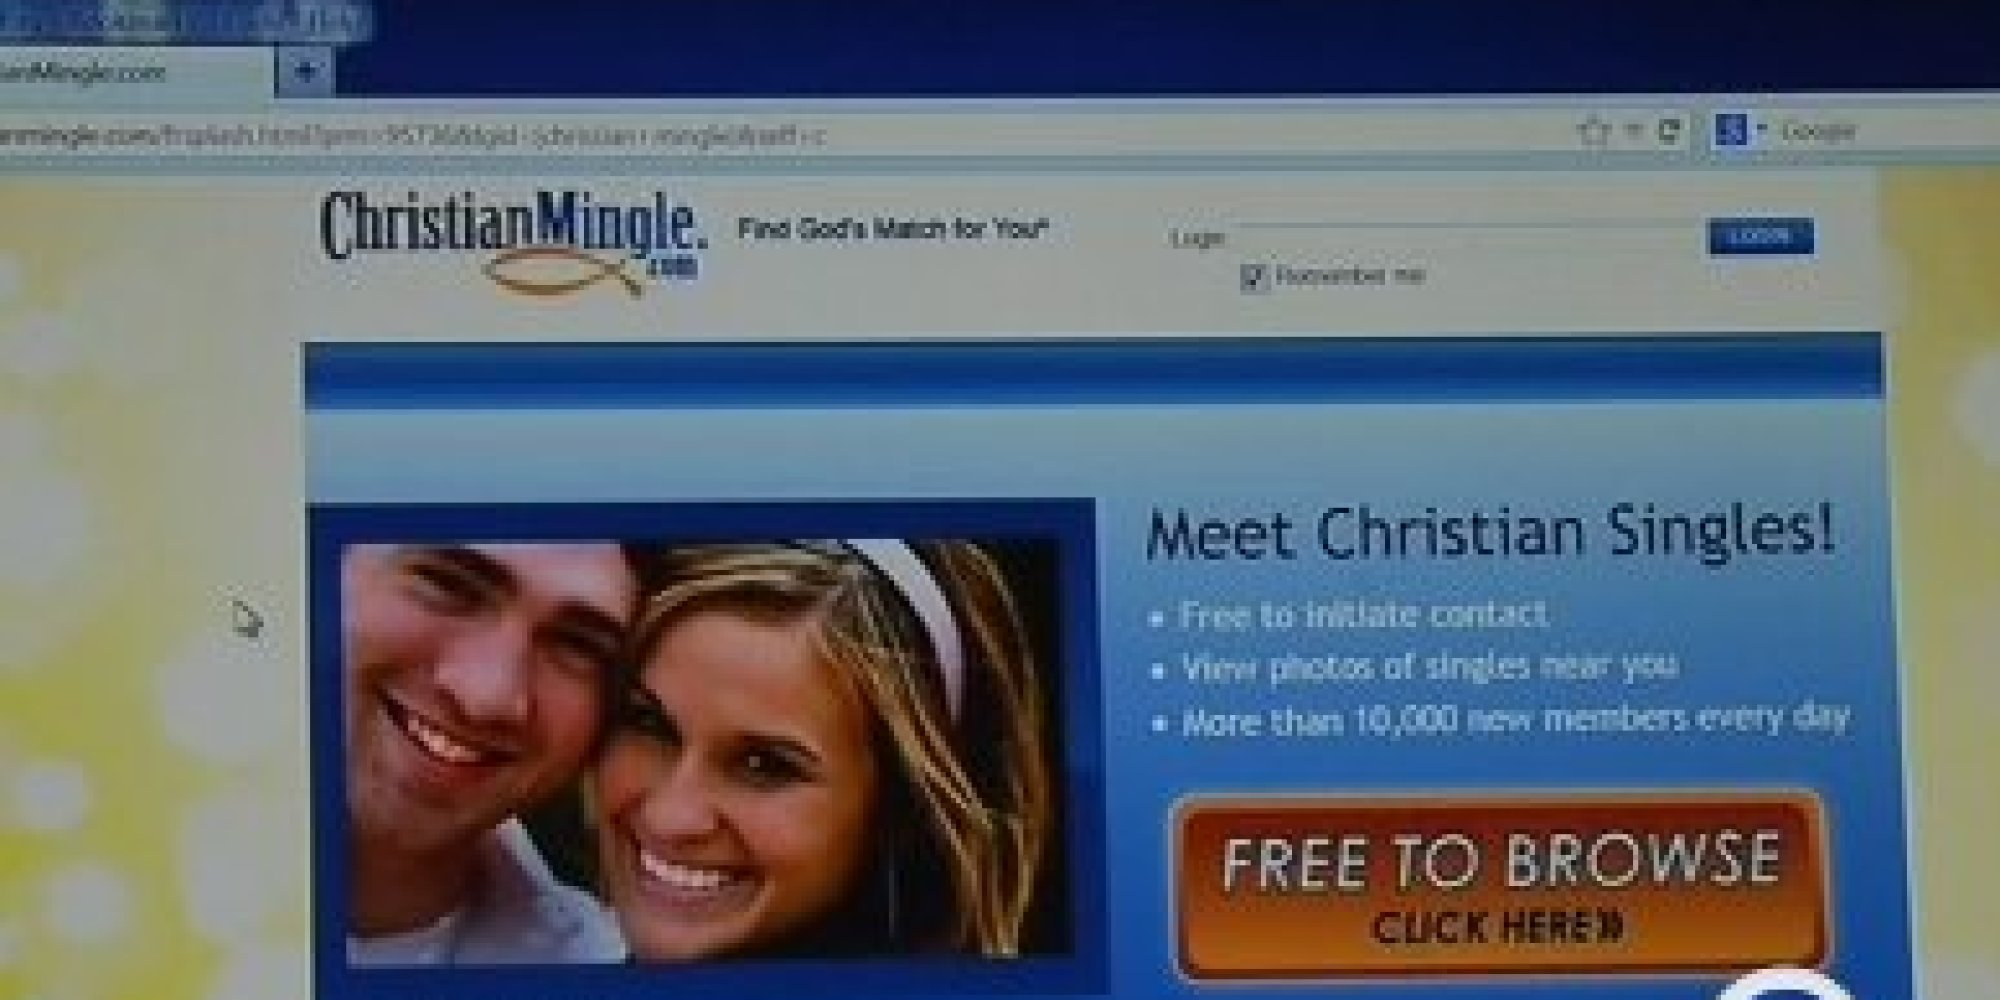 Christian dating turned gangbang